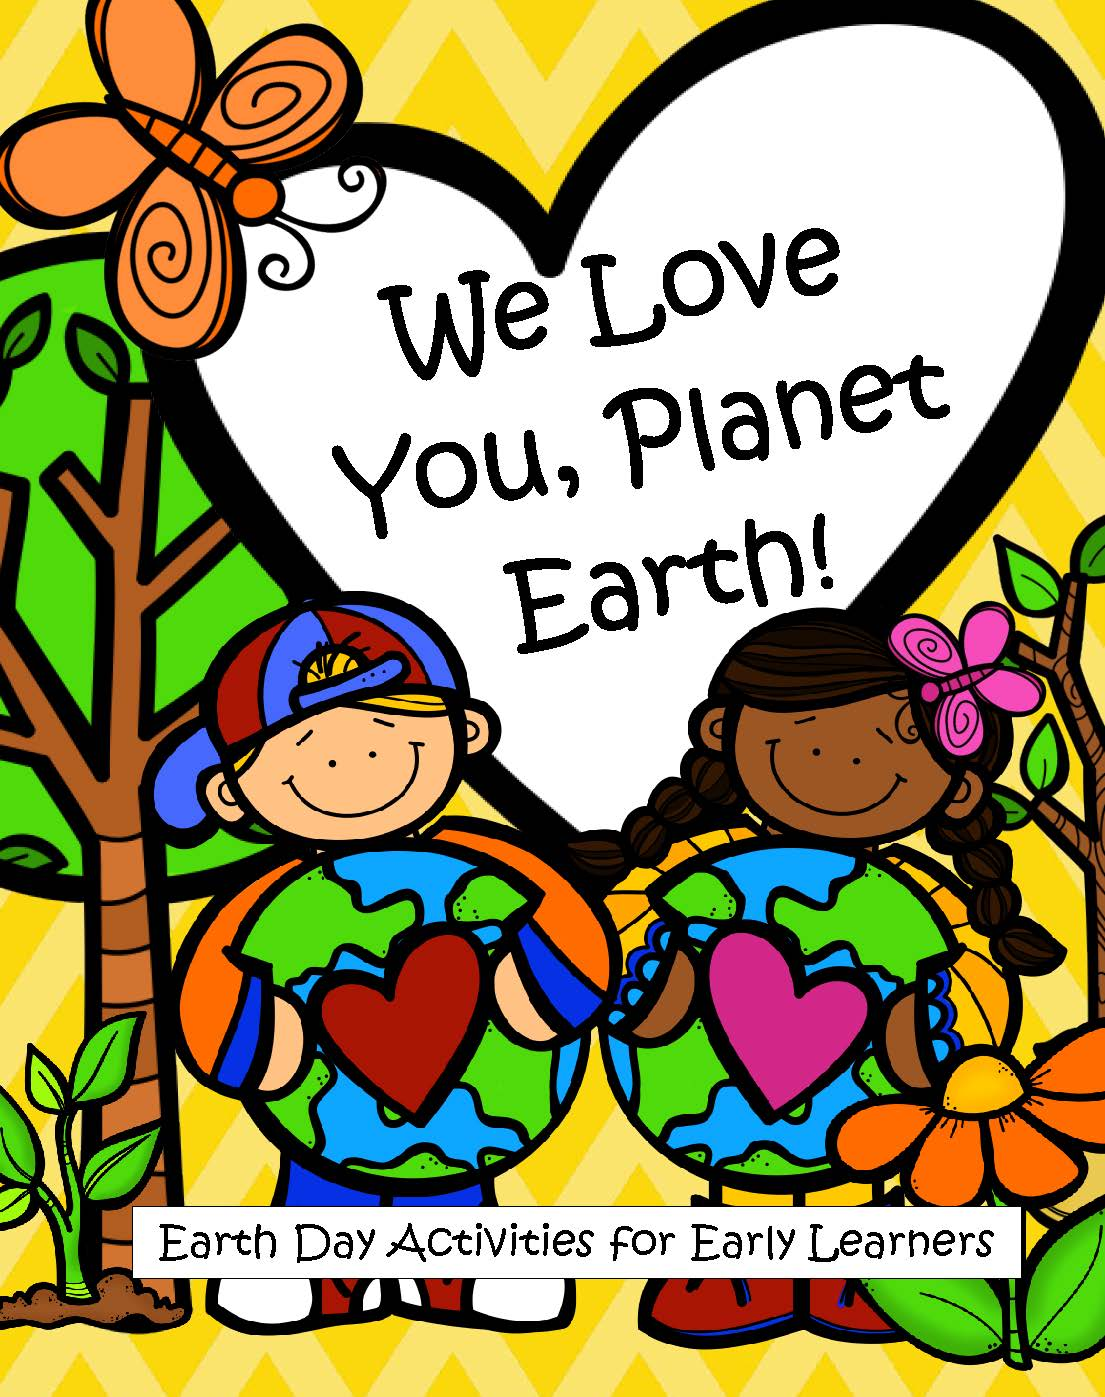 Earth Day Images Pictures